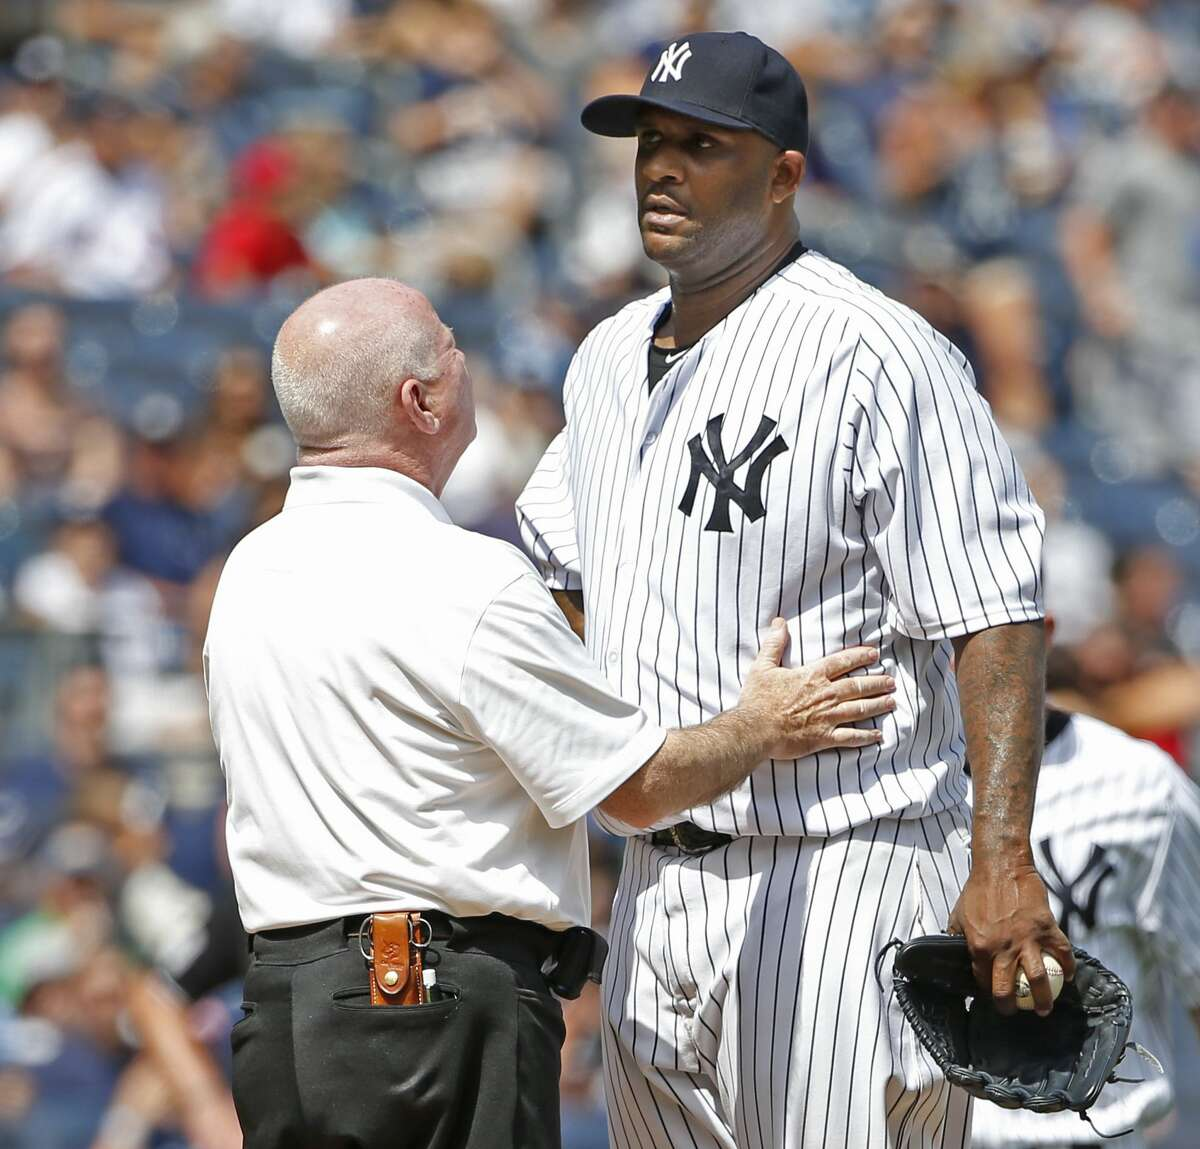 Yankees trainer Steve Donohue, left, talks to starting pitcher CC Sabathia in the third inning before manager Joe Girardi removed Sabathia from the game.